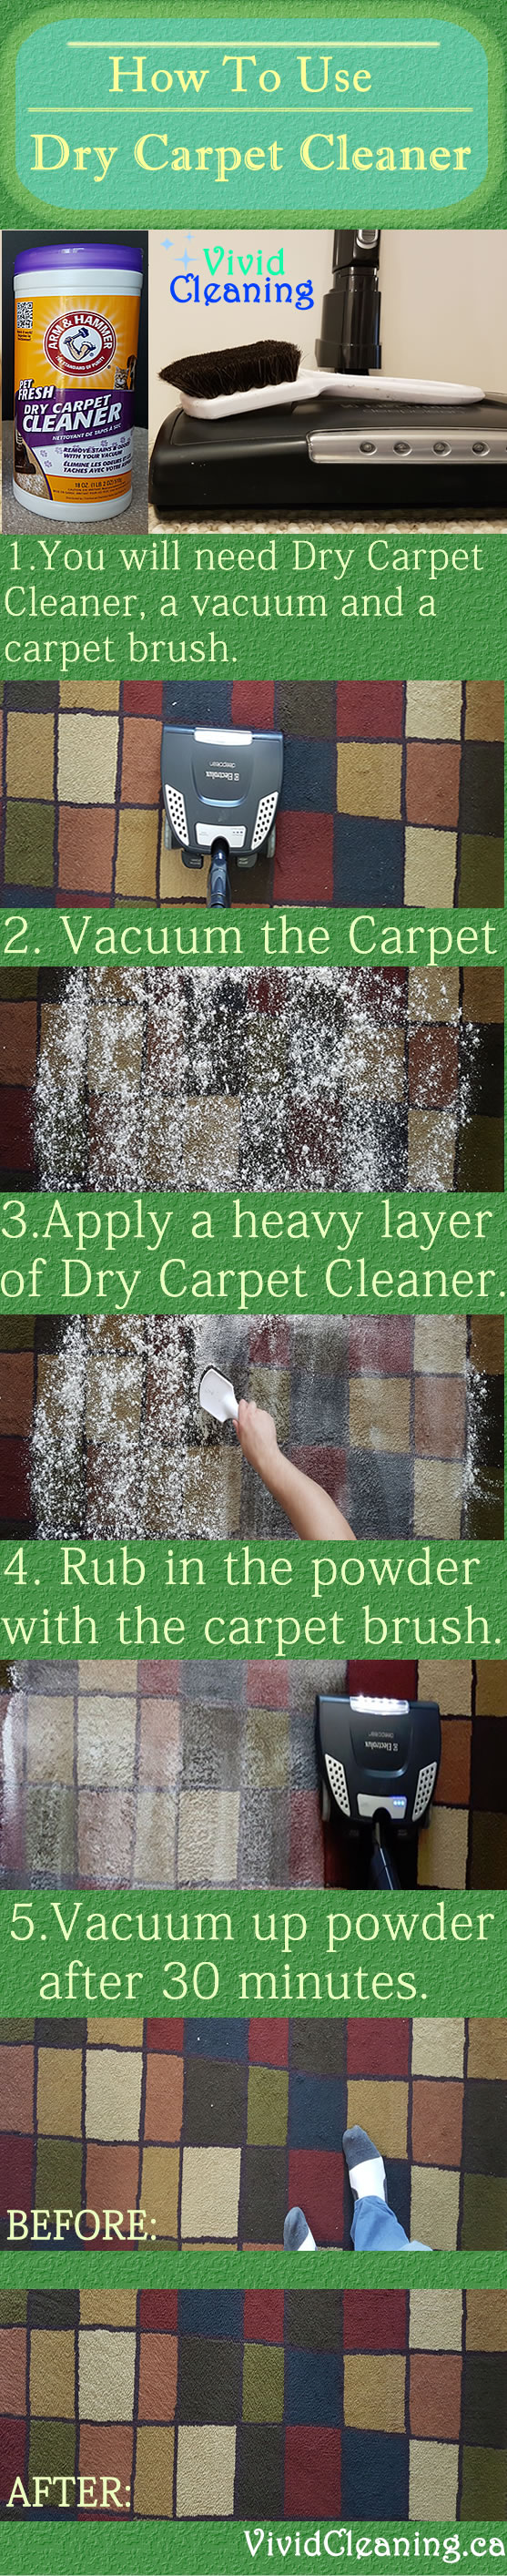 How To Use Dry Carpet Cleaner 1. You will need Dry Carpet Cleaner, a vacuum and a carpet brush. 2. Vacuum the Carpet. 3. Apply a heavy layer of Dry Carpet Cleaner. 4. Rub in the powder with the carpet brush. 5. Vacuum up powder after 30 minutes.